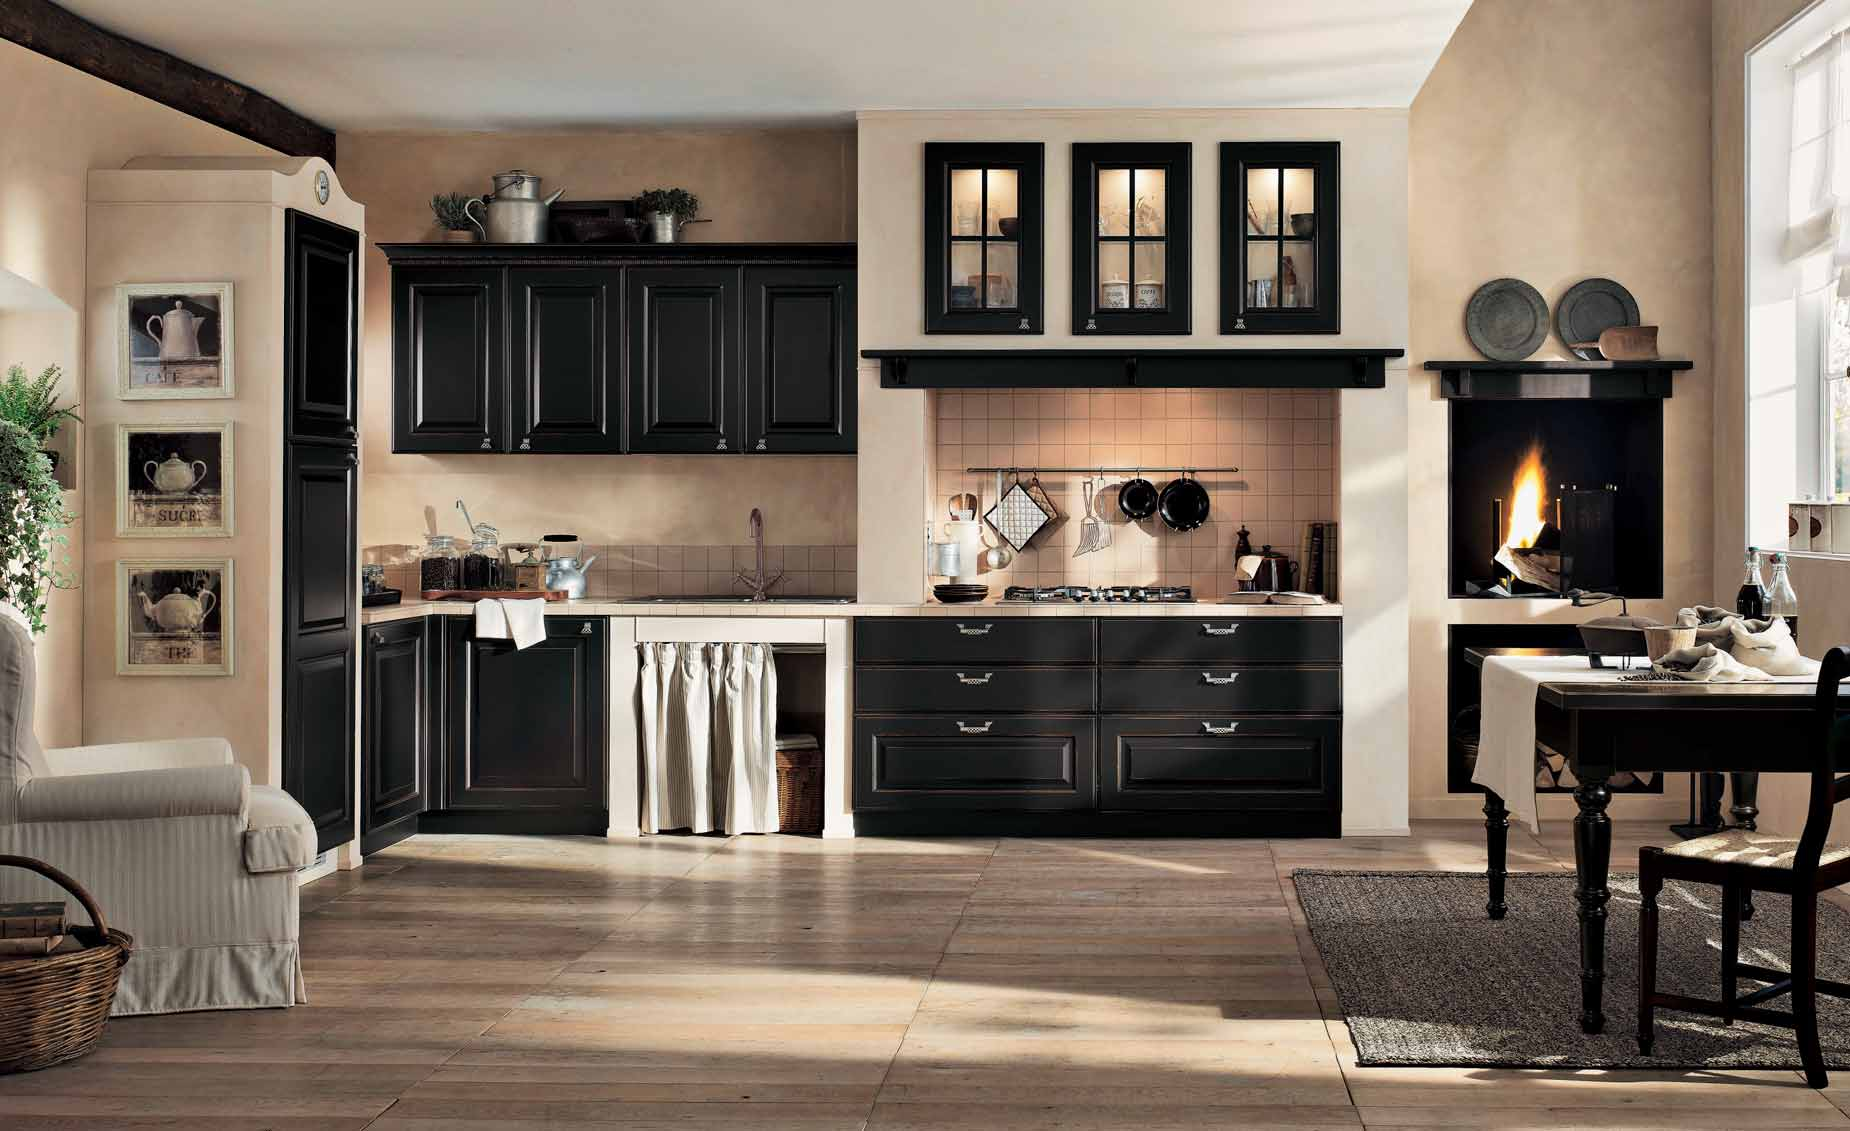 Black And Cream Gaia Classic Kitchen Interior   StyleHomes.net